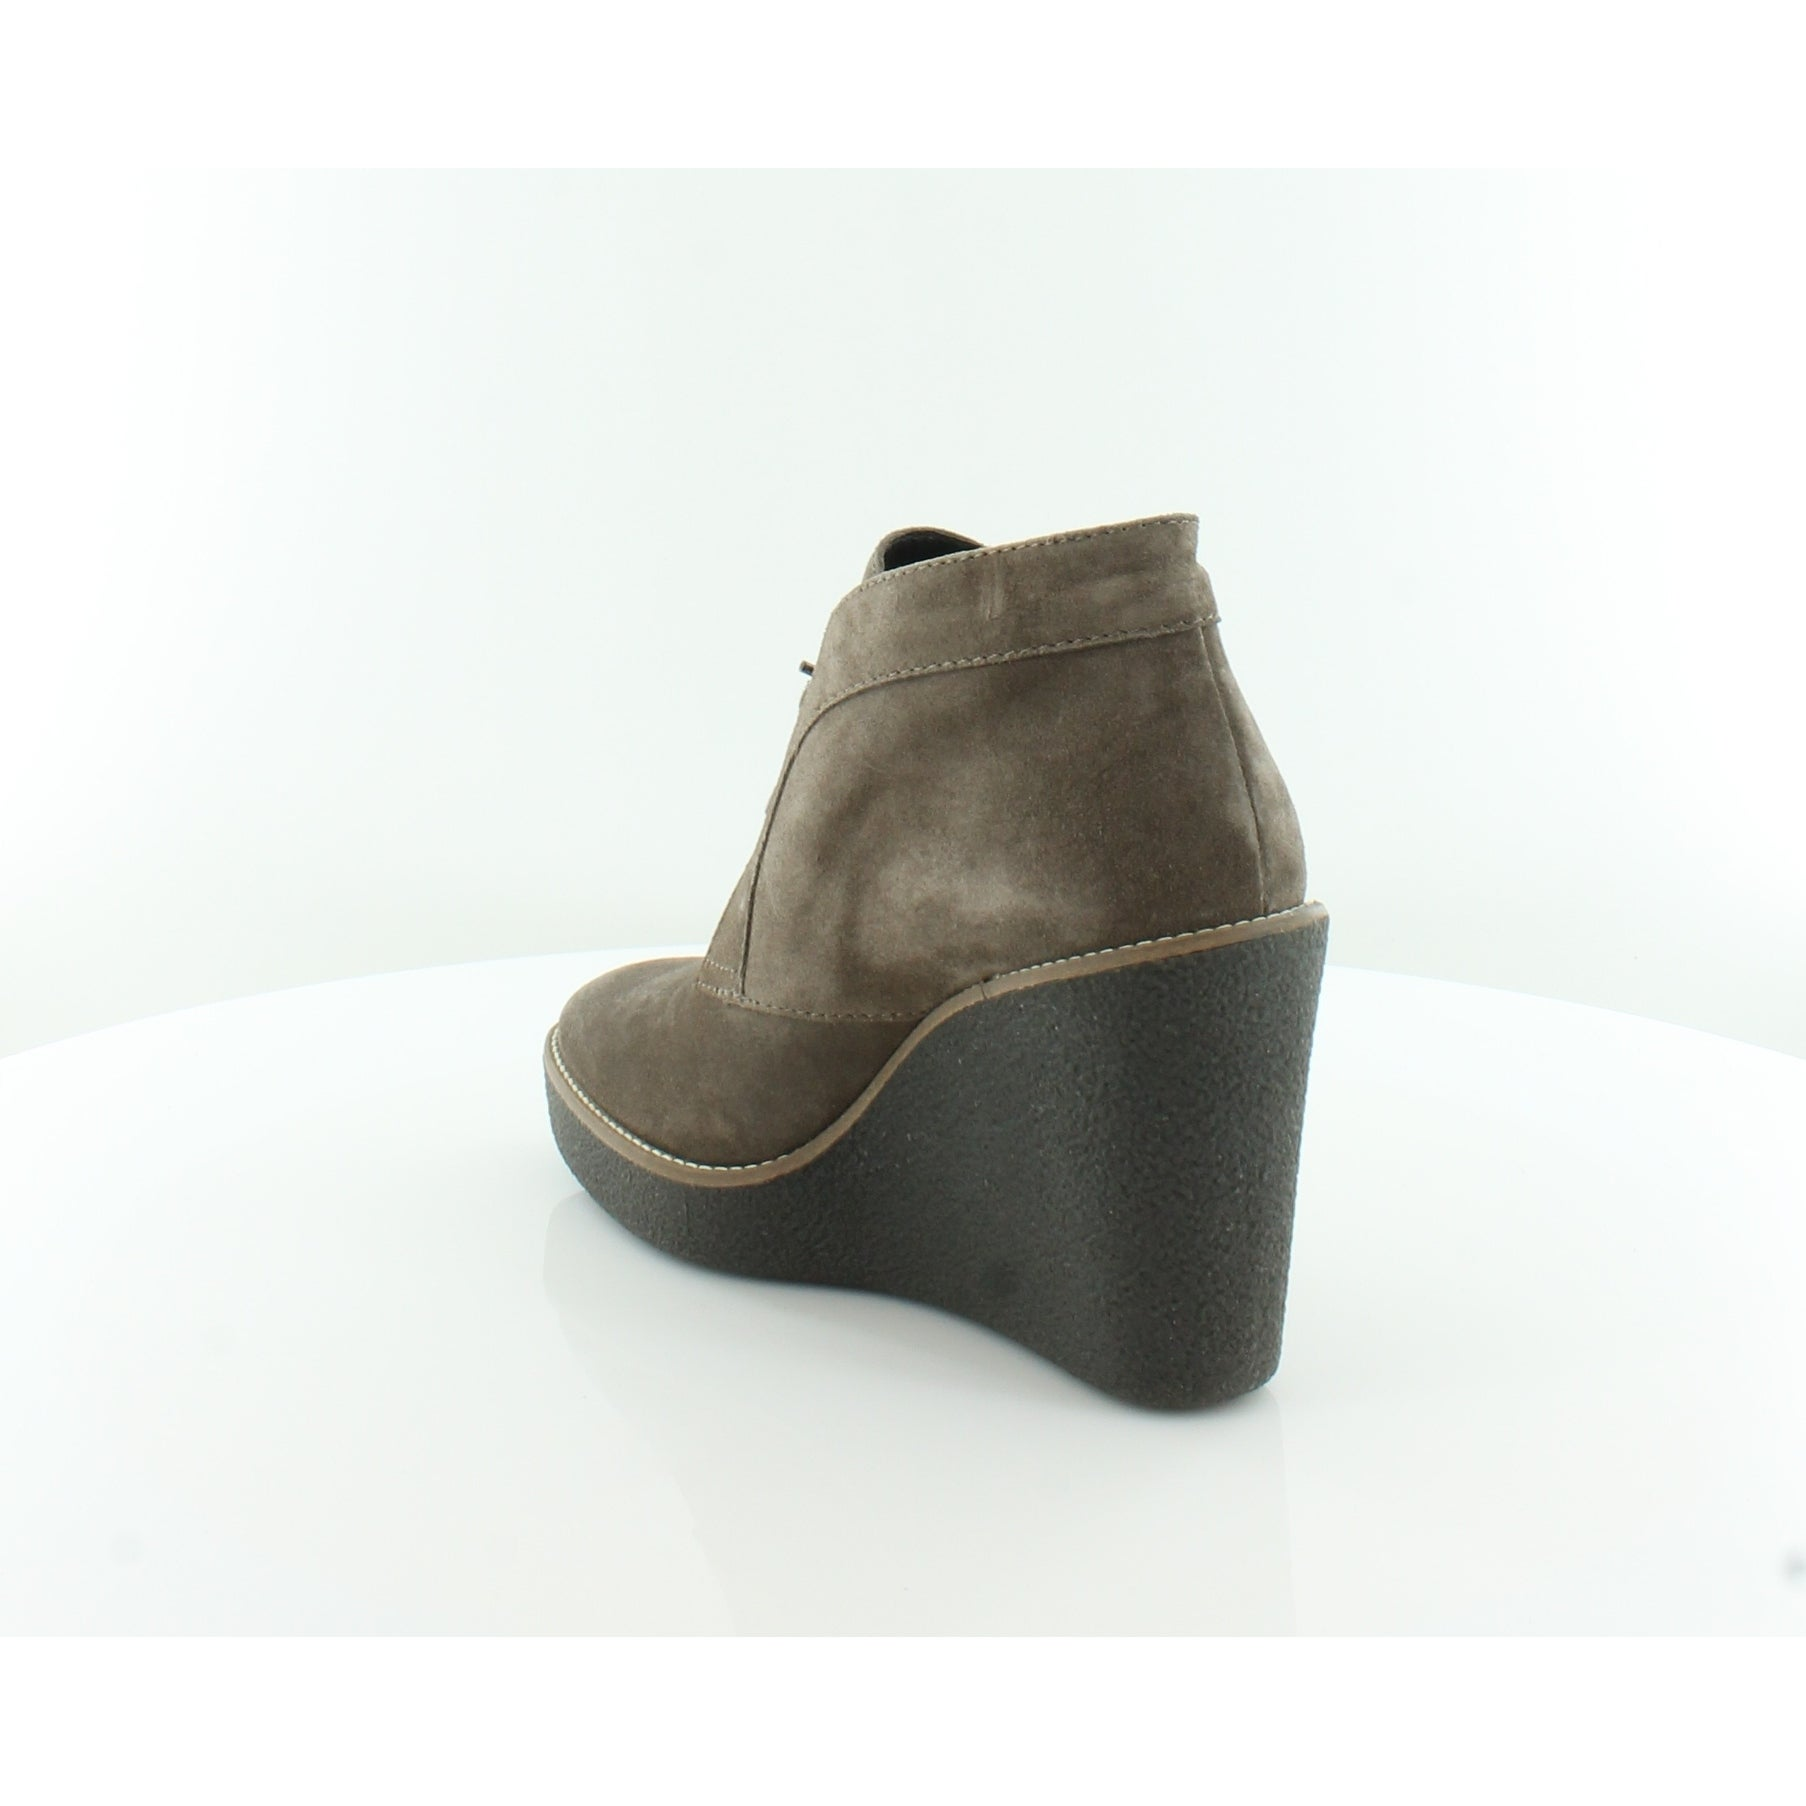 a693537075ba Shop Aquatalia Vianna Women s Boots Taupe - Free Shipping Today - Overstock  - 21949931